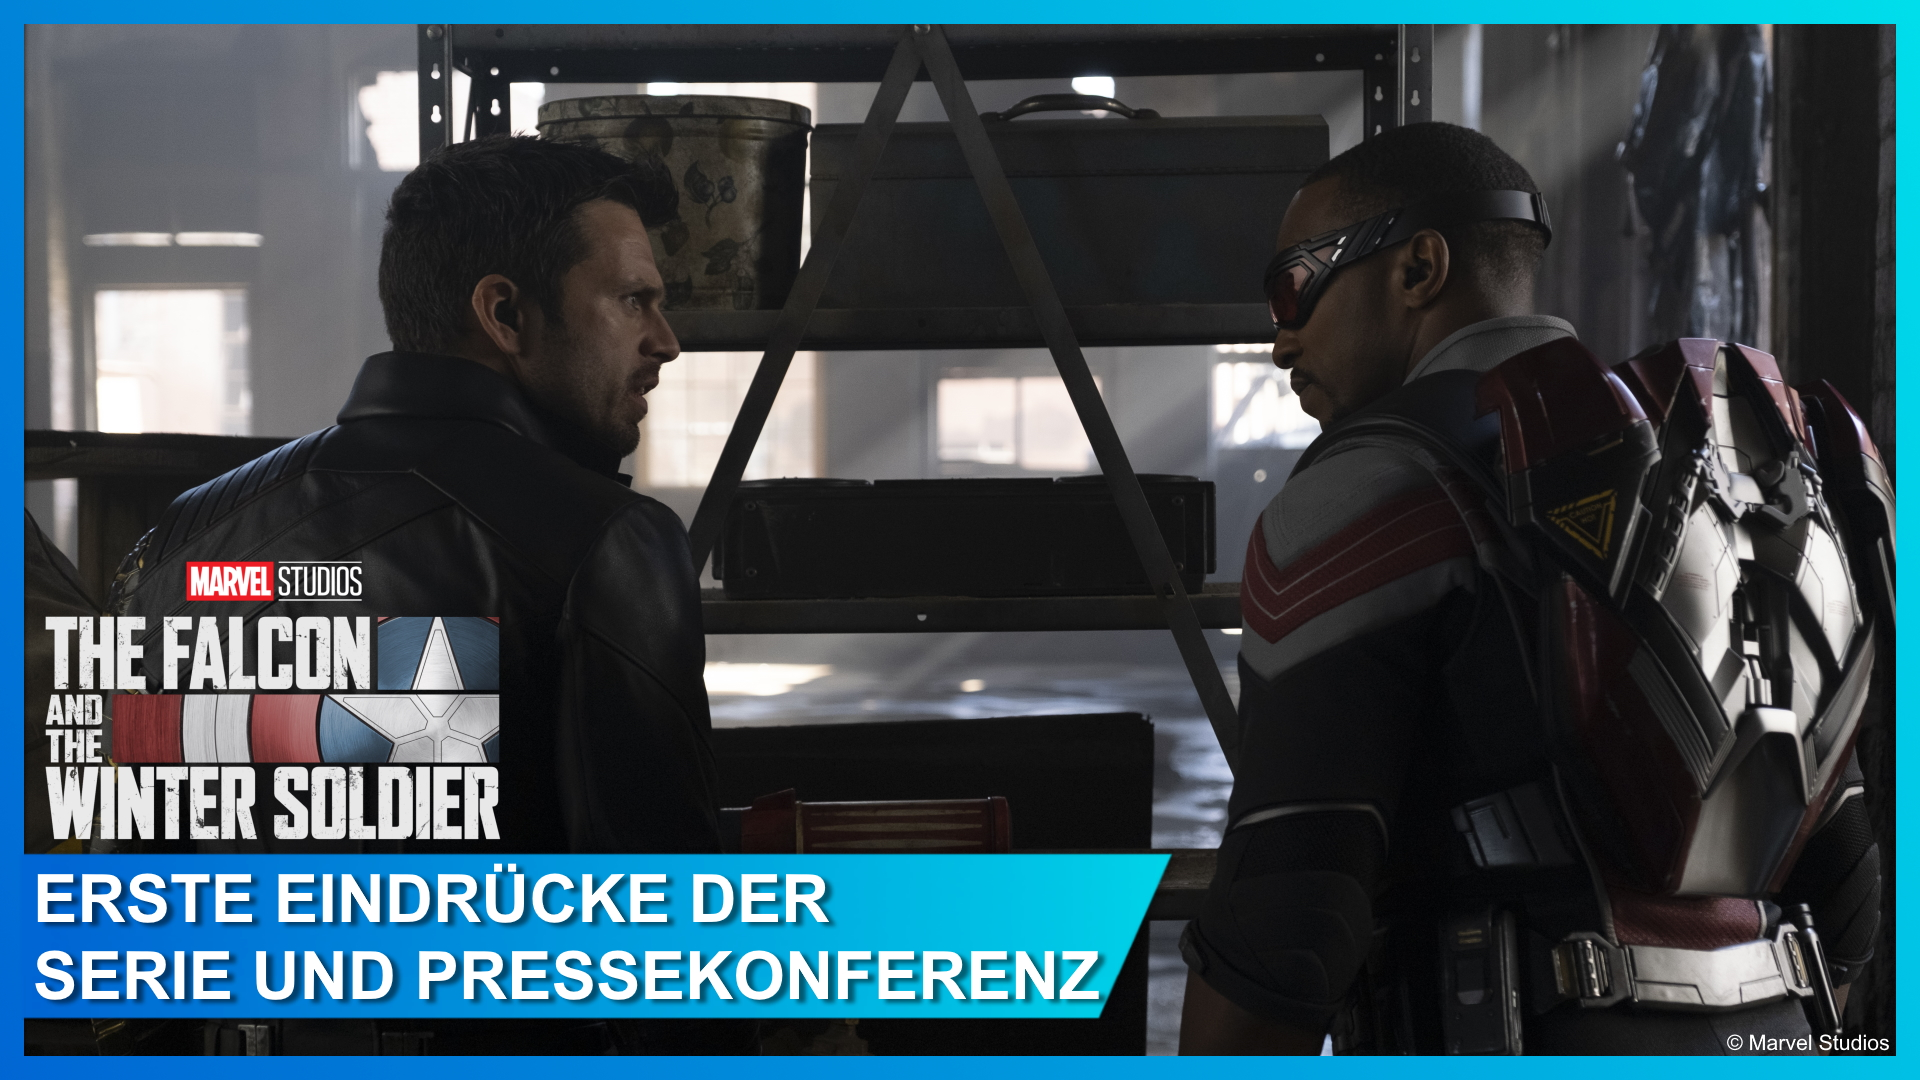 Pressekonferenz zu Falcon and the Winter Soldier